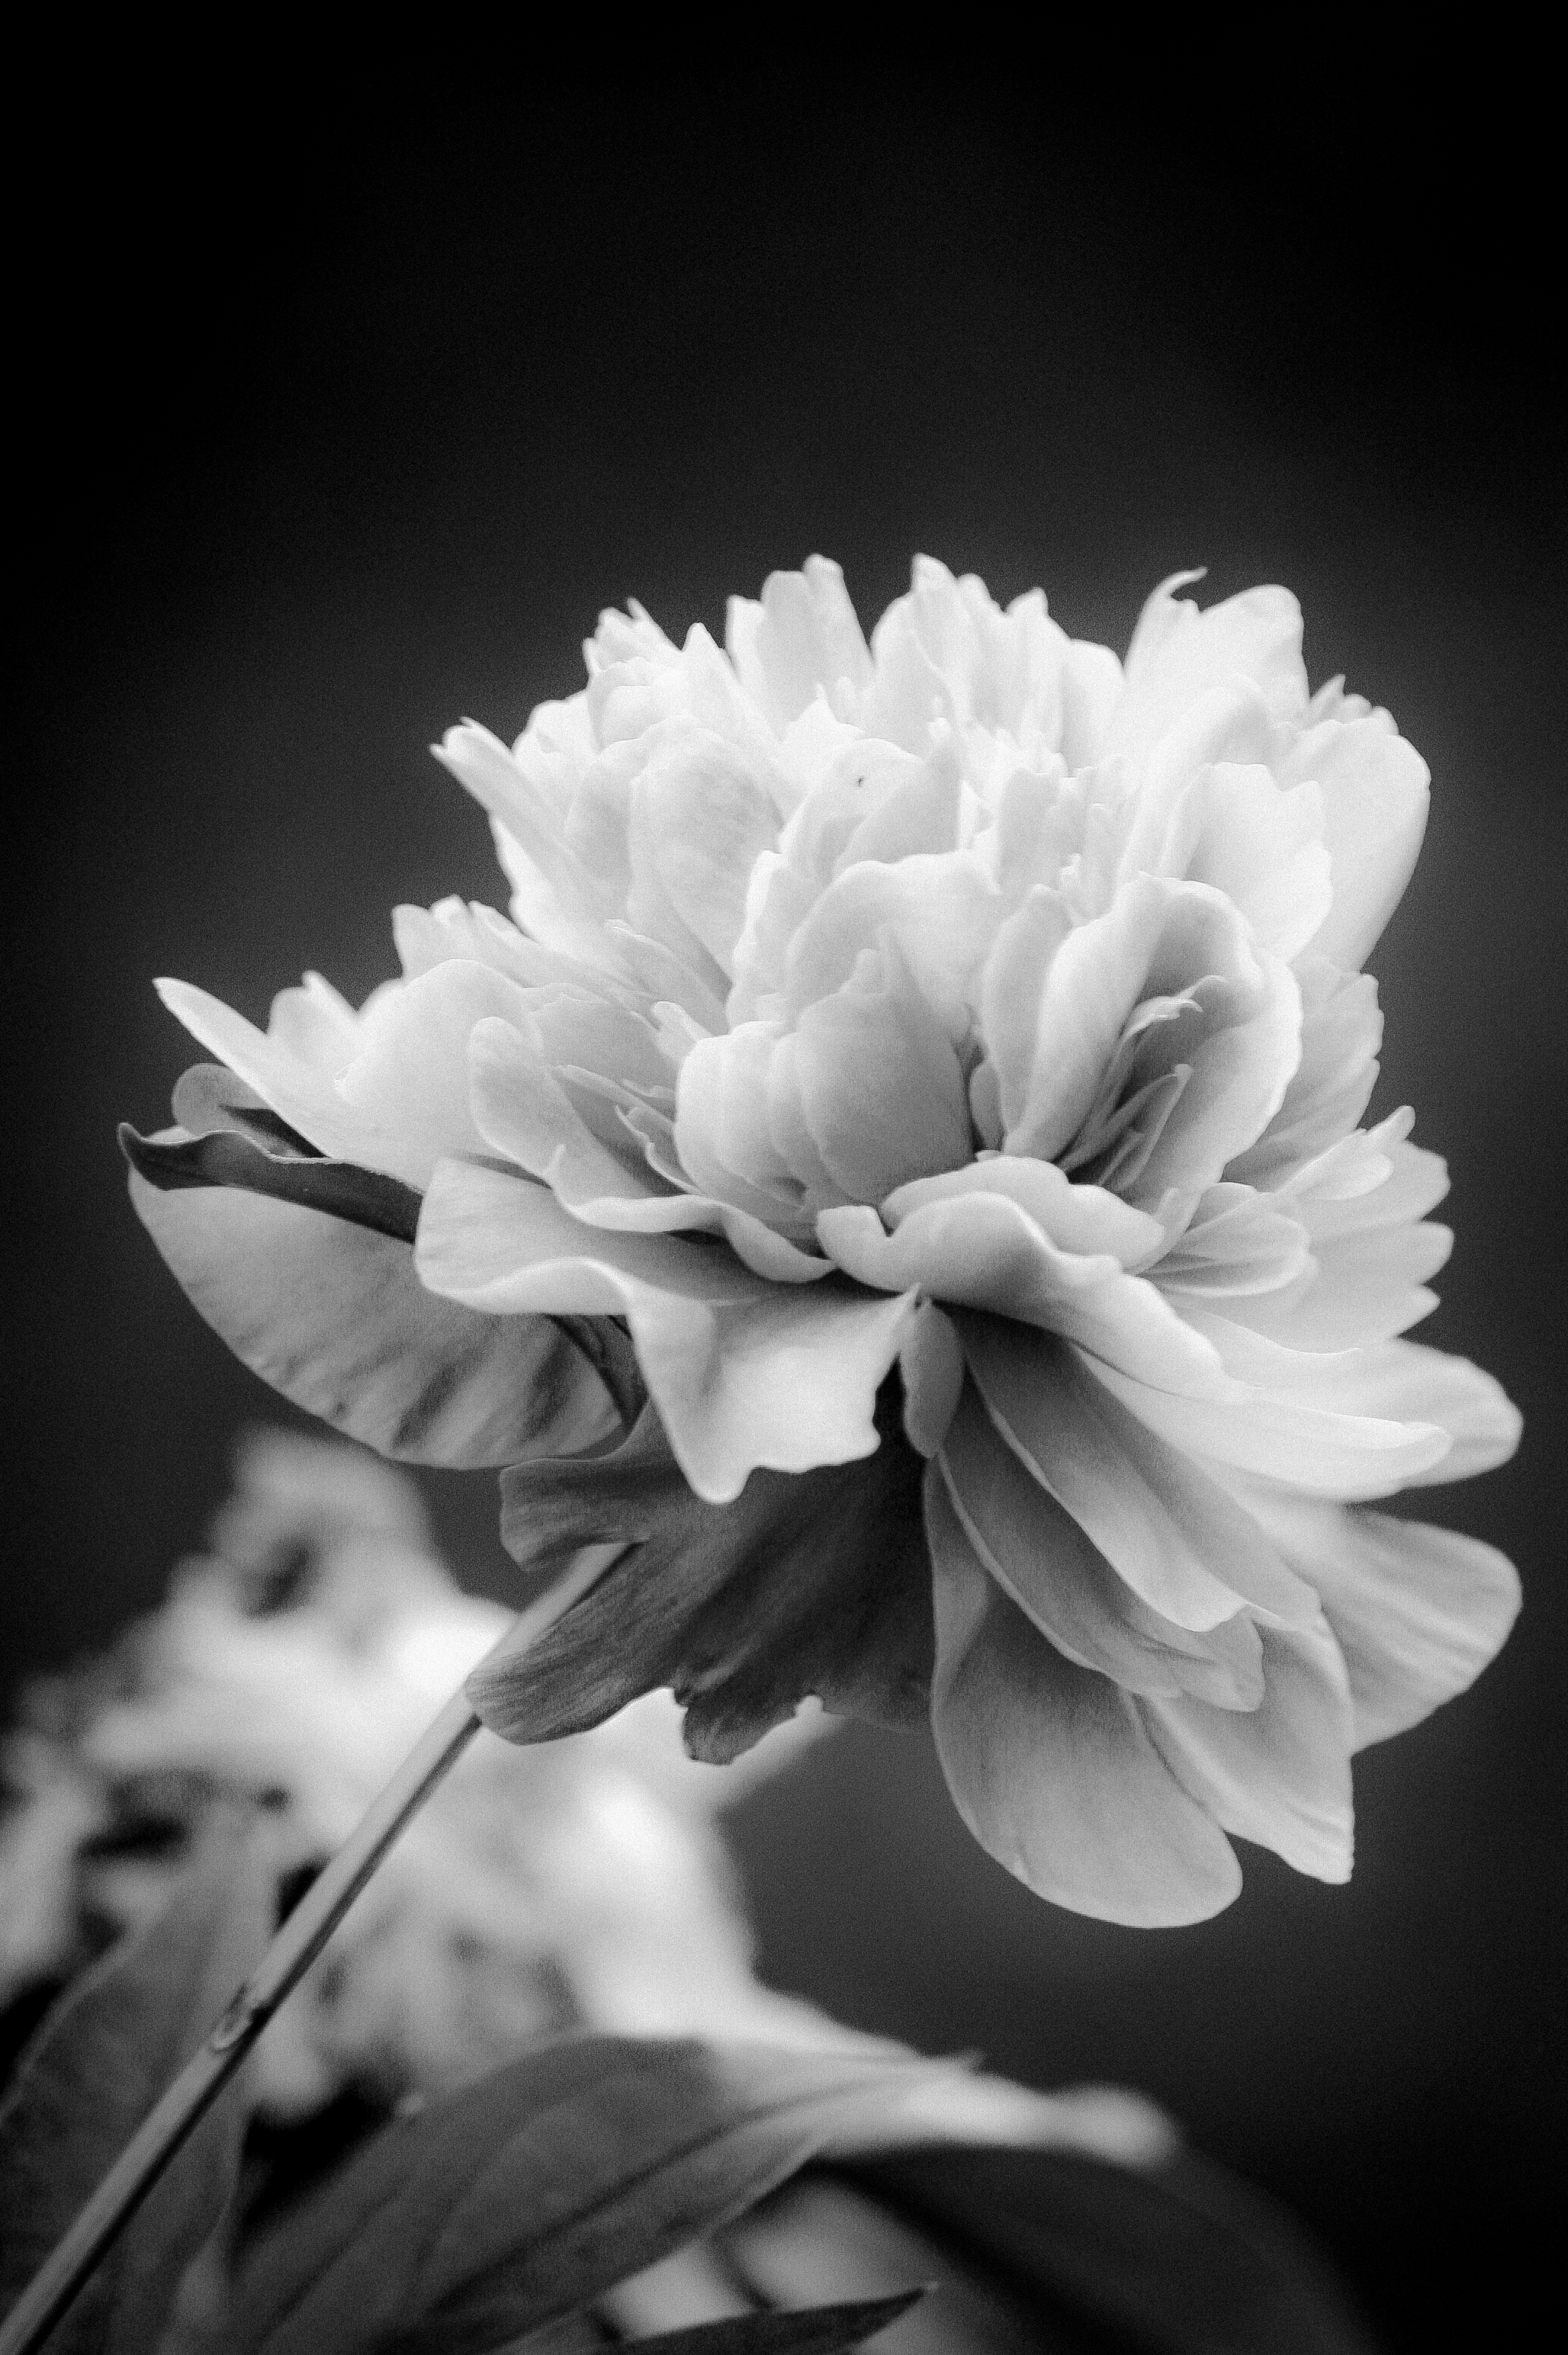 Dramatic Black and White Flower by technogeek11 on DeviantArt